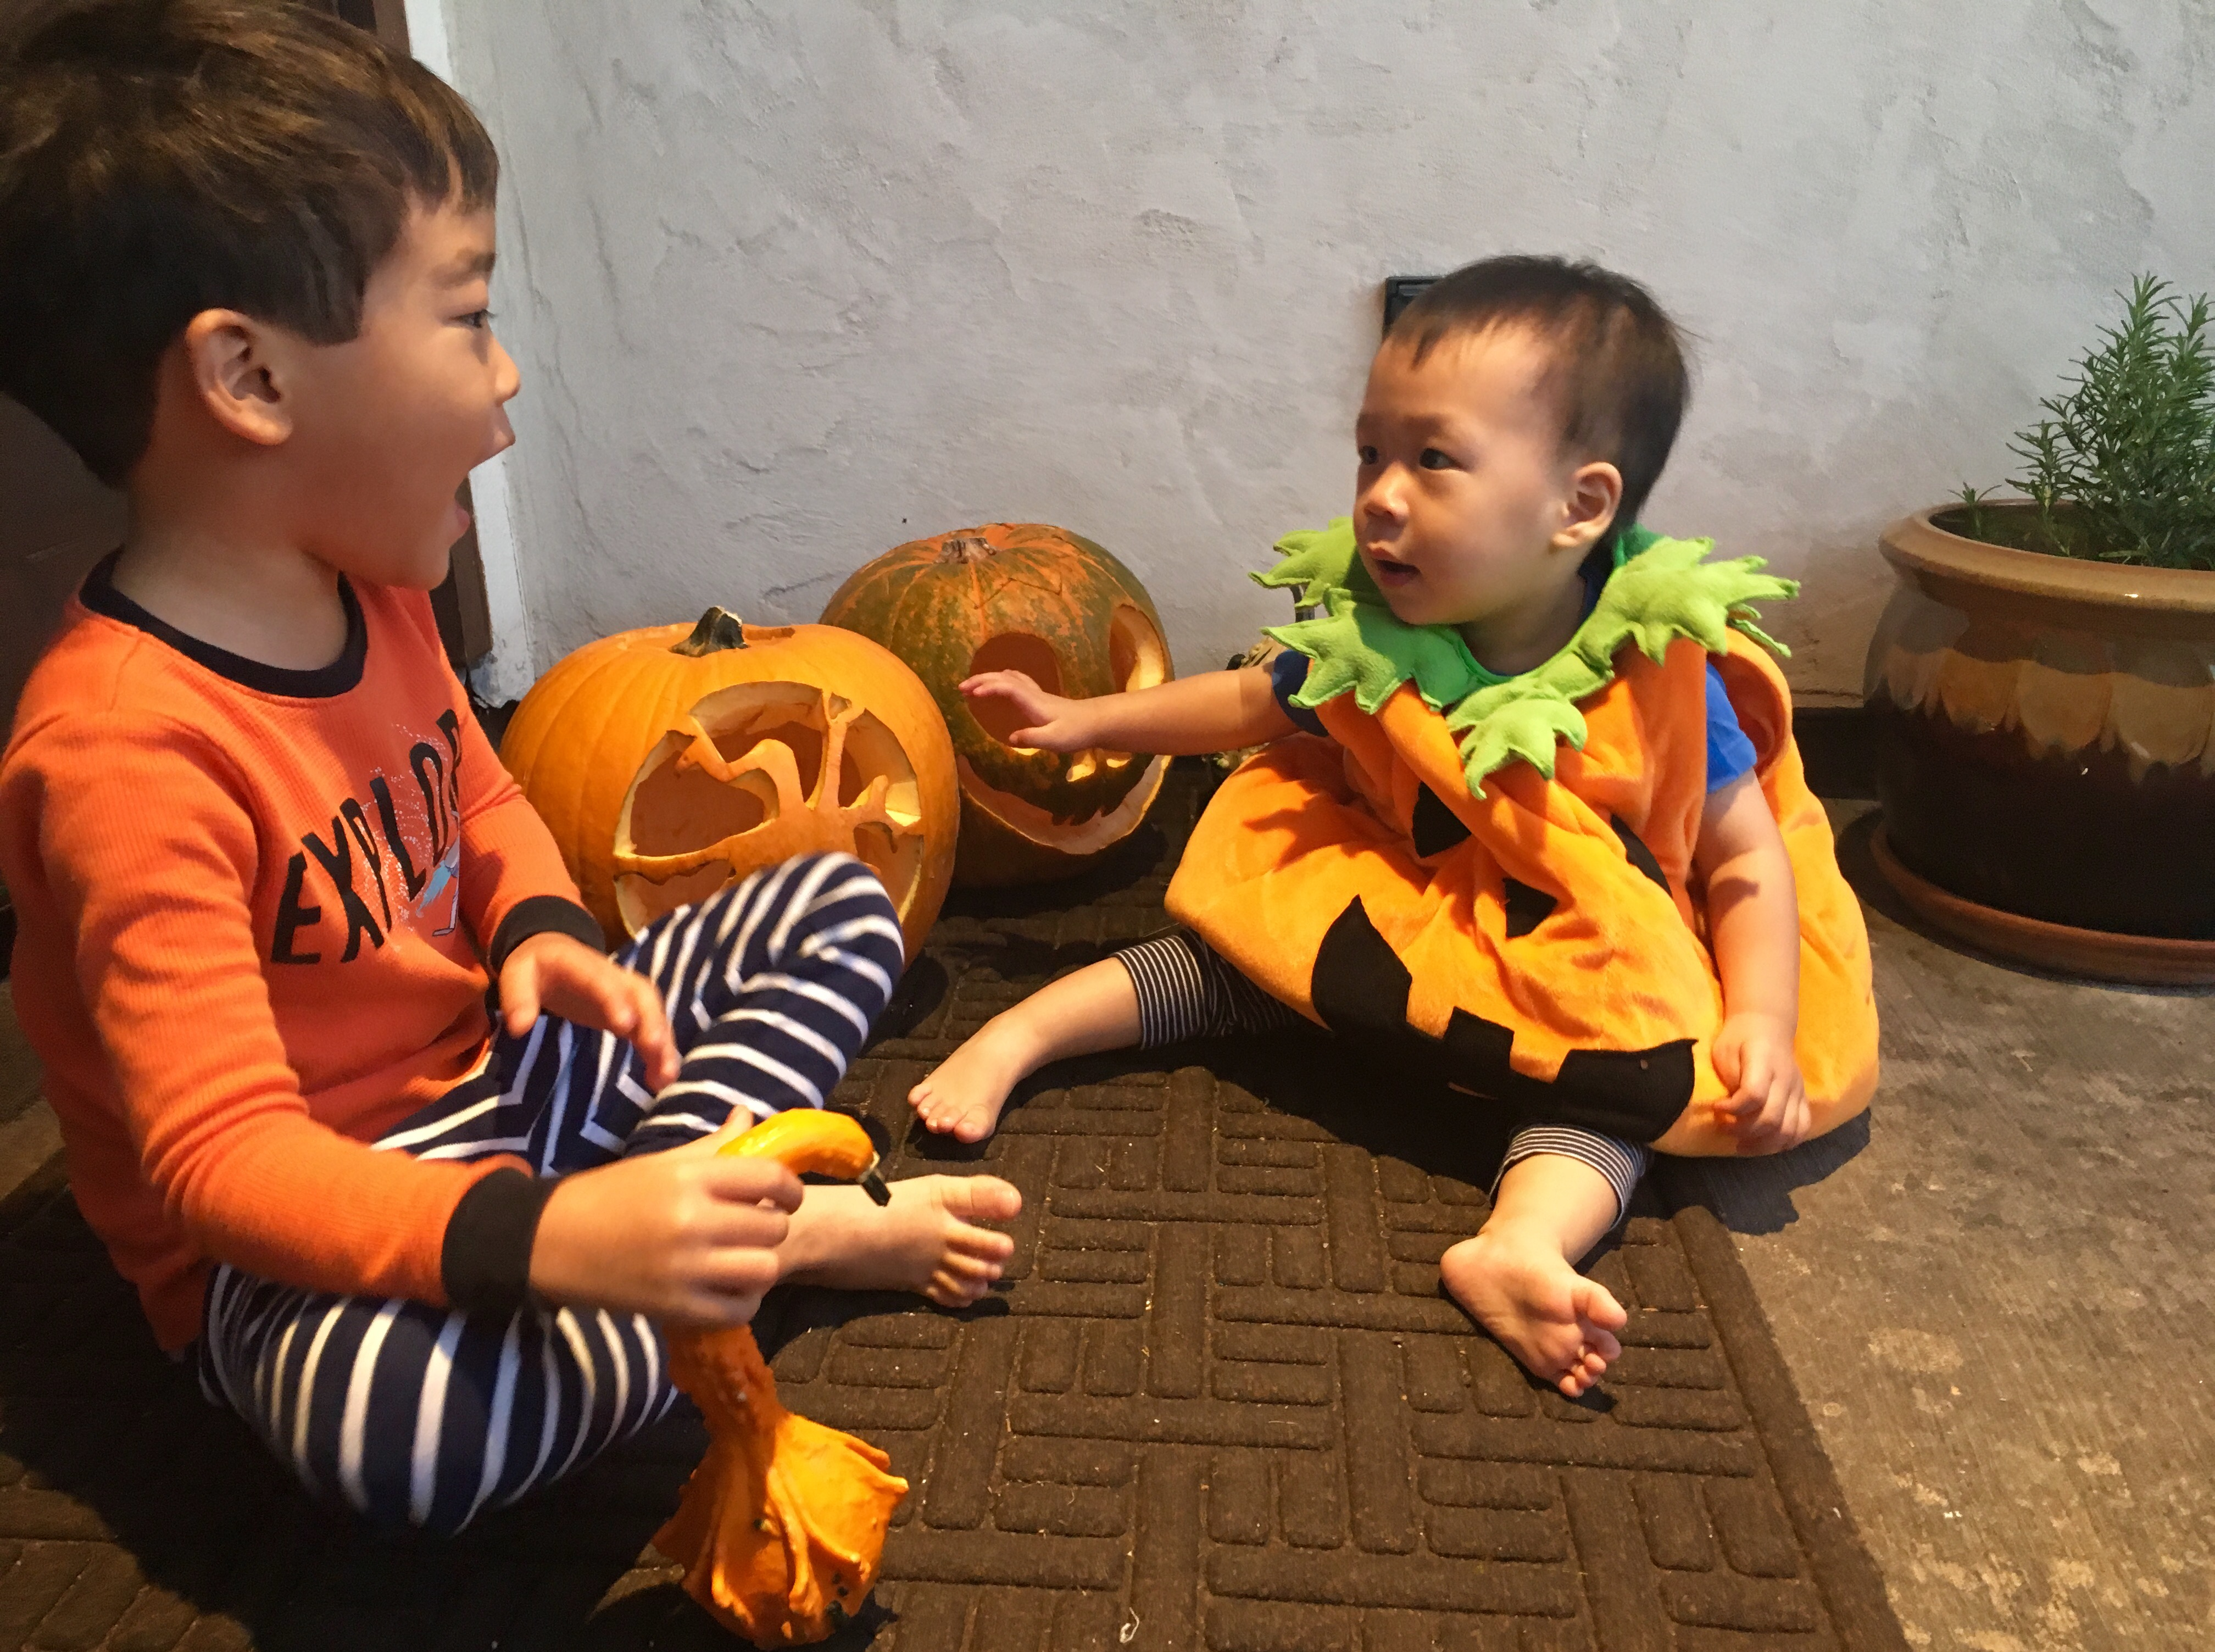 "<div class=""meta image-caption""><div class=""origin-logo origin-image ktrk""><span>KTRK</span></div><span class=""caption-text"">Miya Shay's kiddos with their pumpkin creations</span></div>"